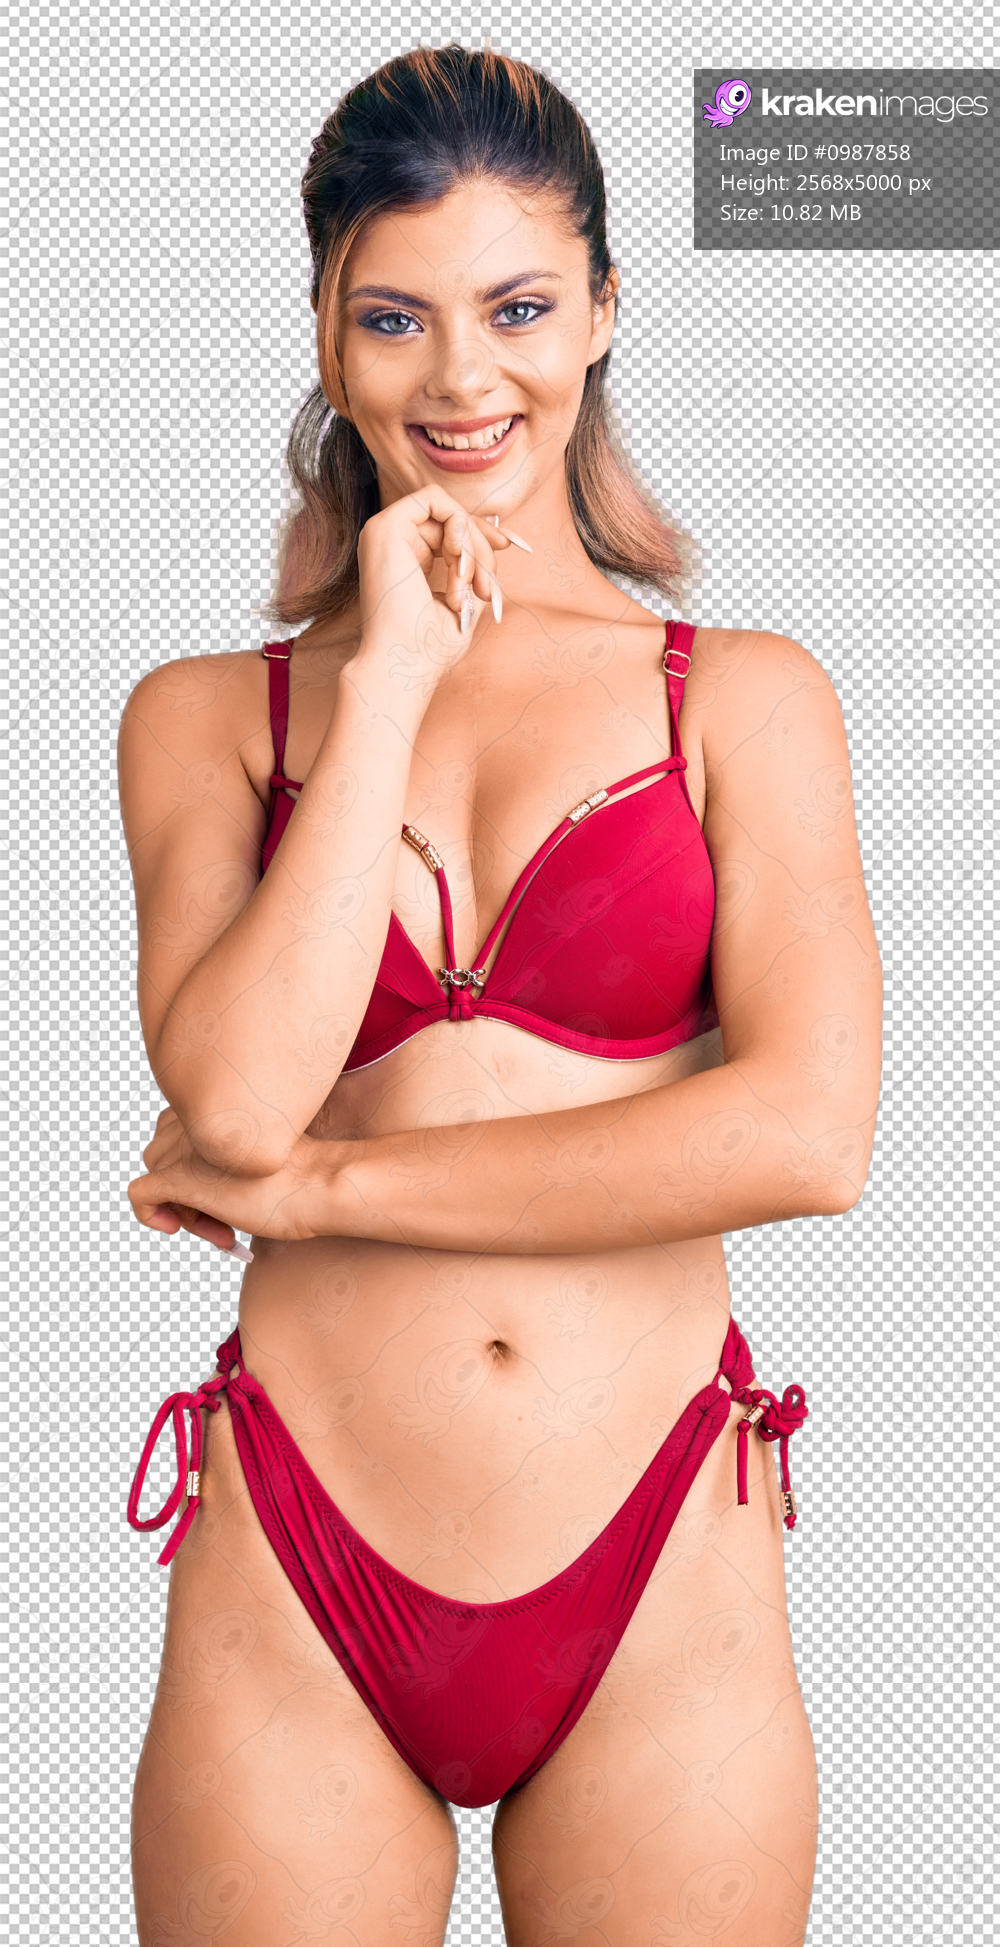 Young beautiful woman wearing bikini looking confident at the camera smiling with crossed arms and hand raised on chin. thinking positive.